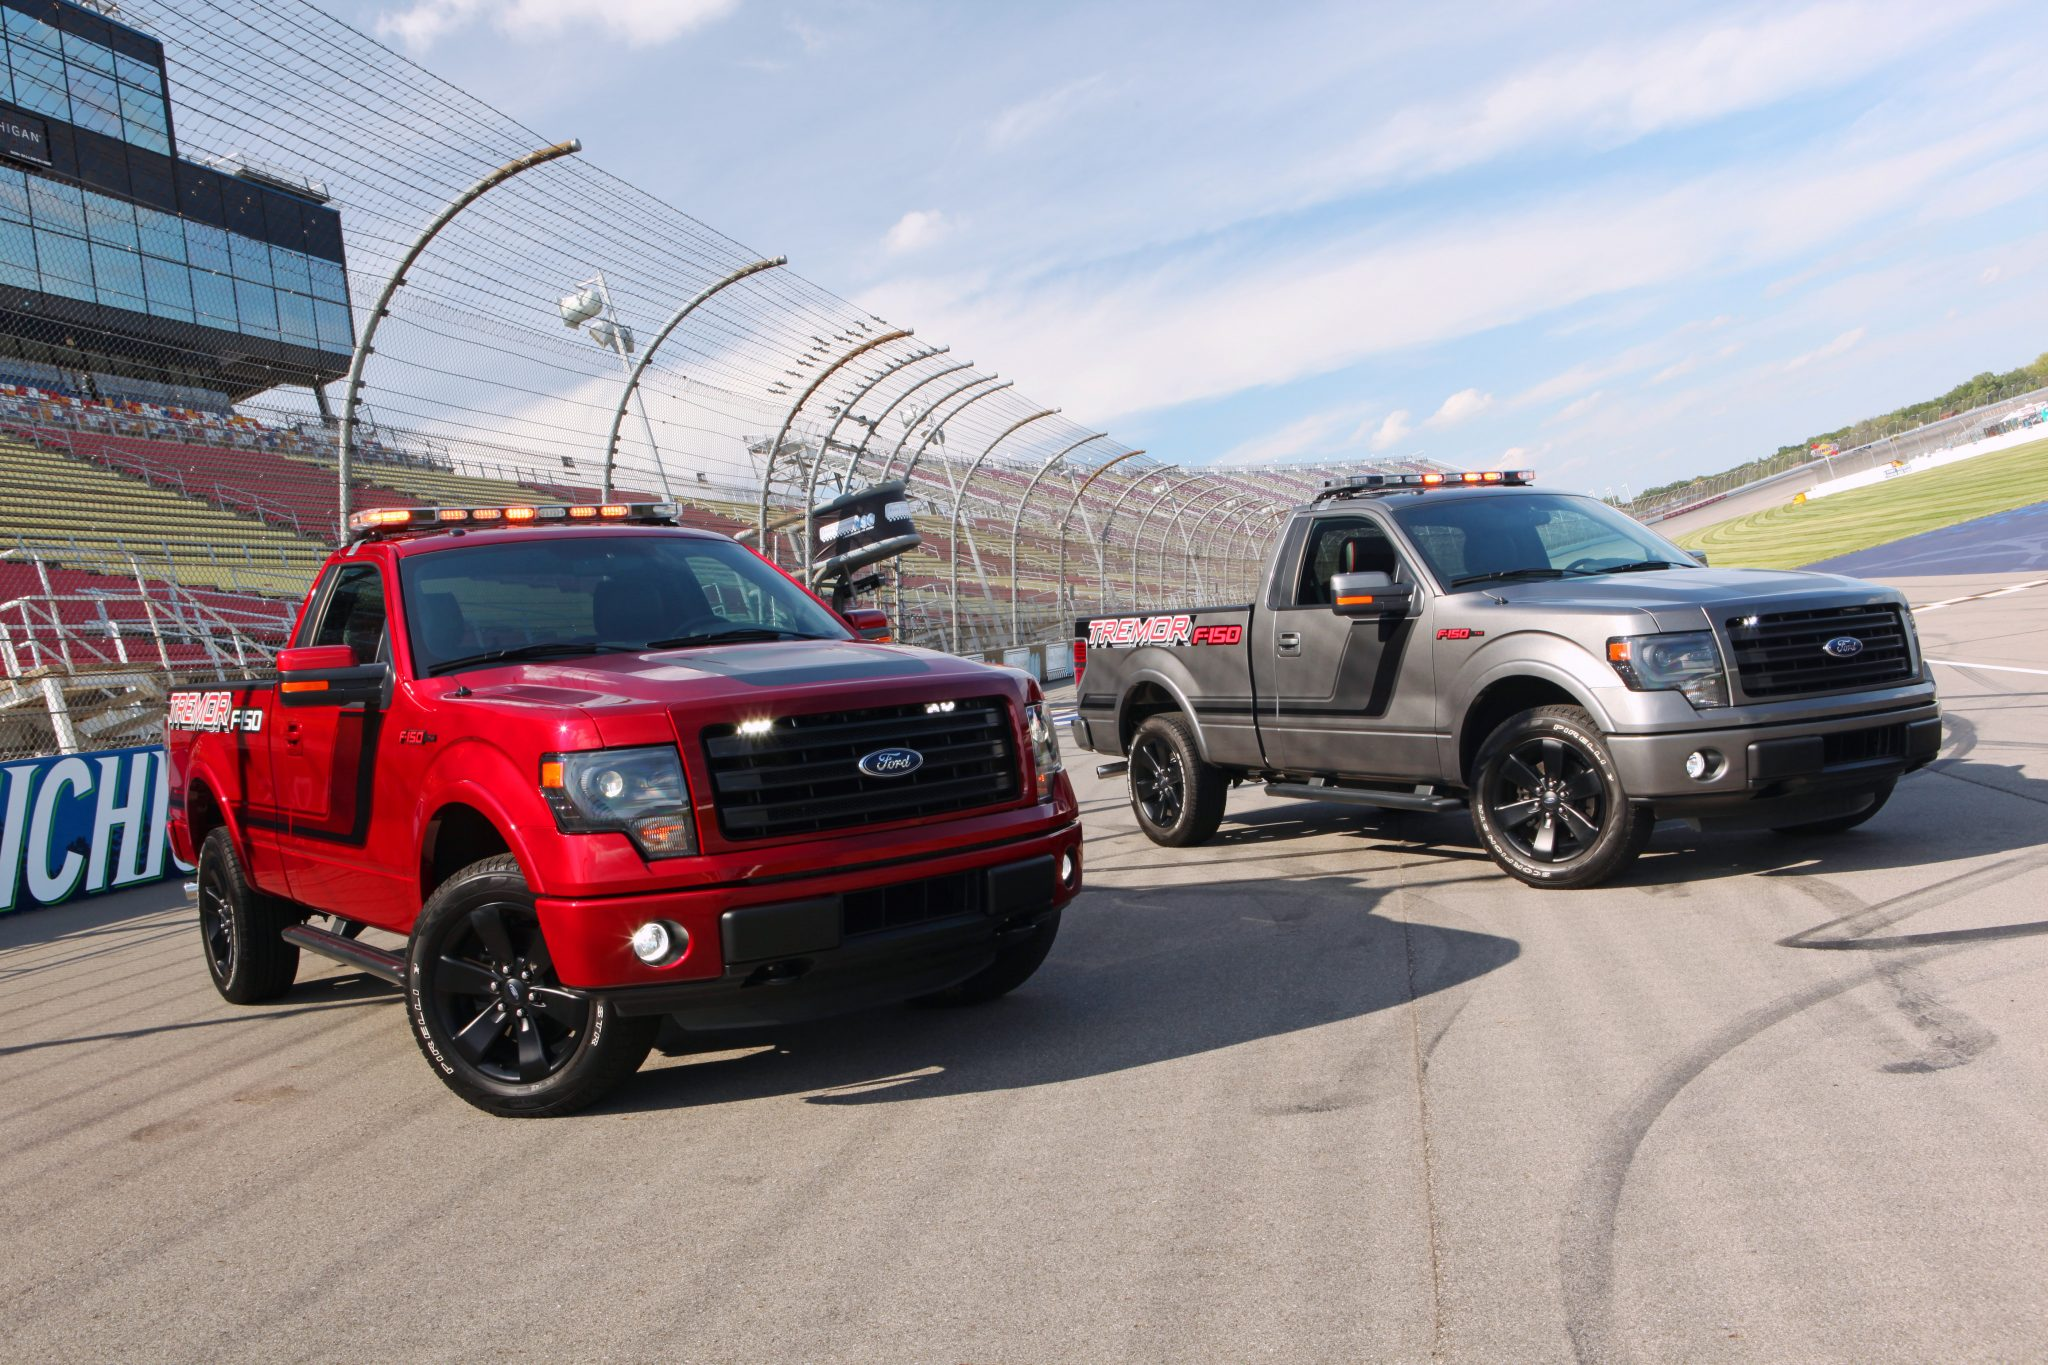 F 150 Tremor >> 2014 Ford F-150 Tremor Overview - The News Wheel